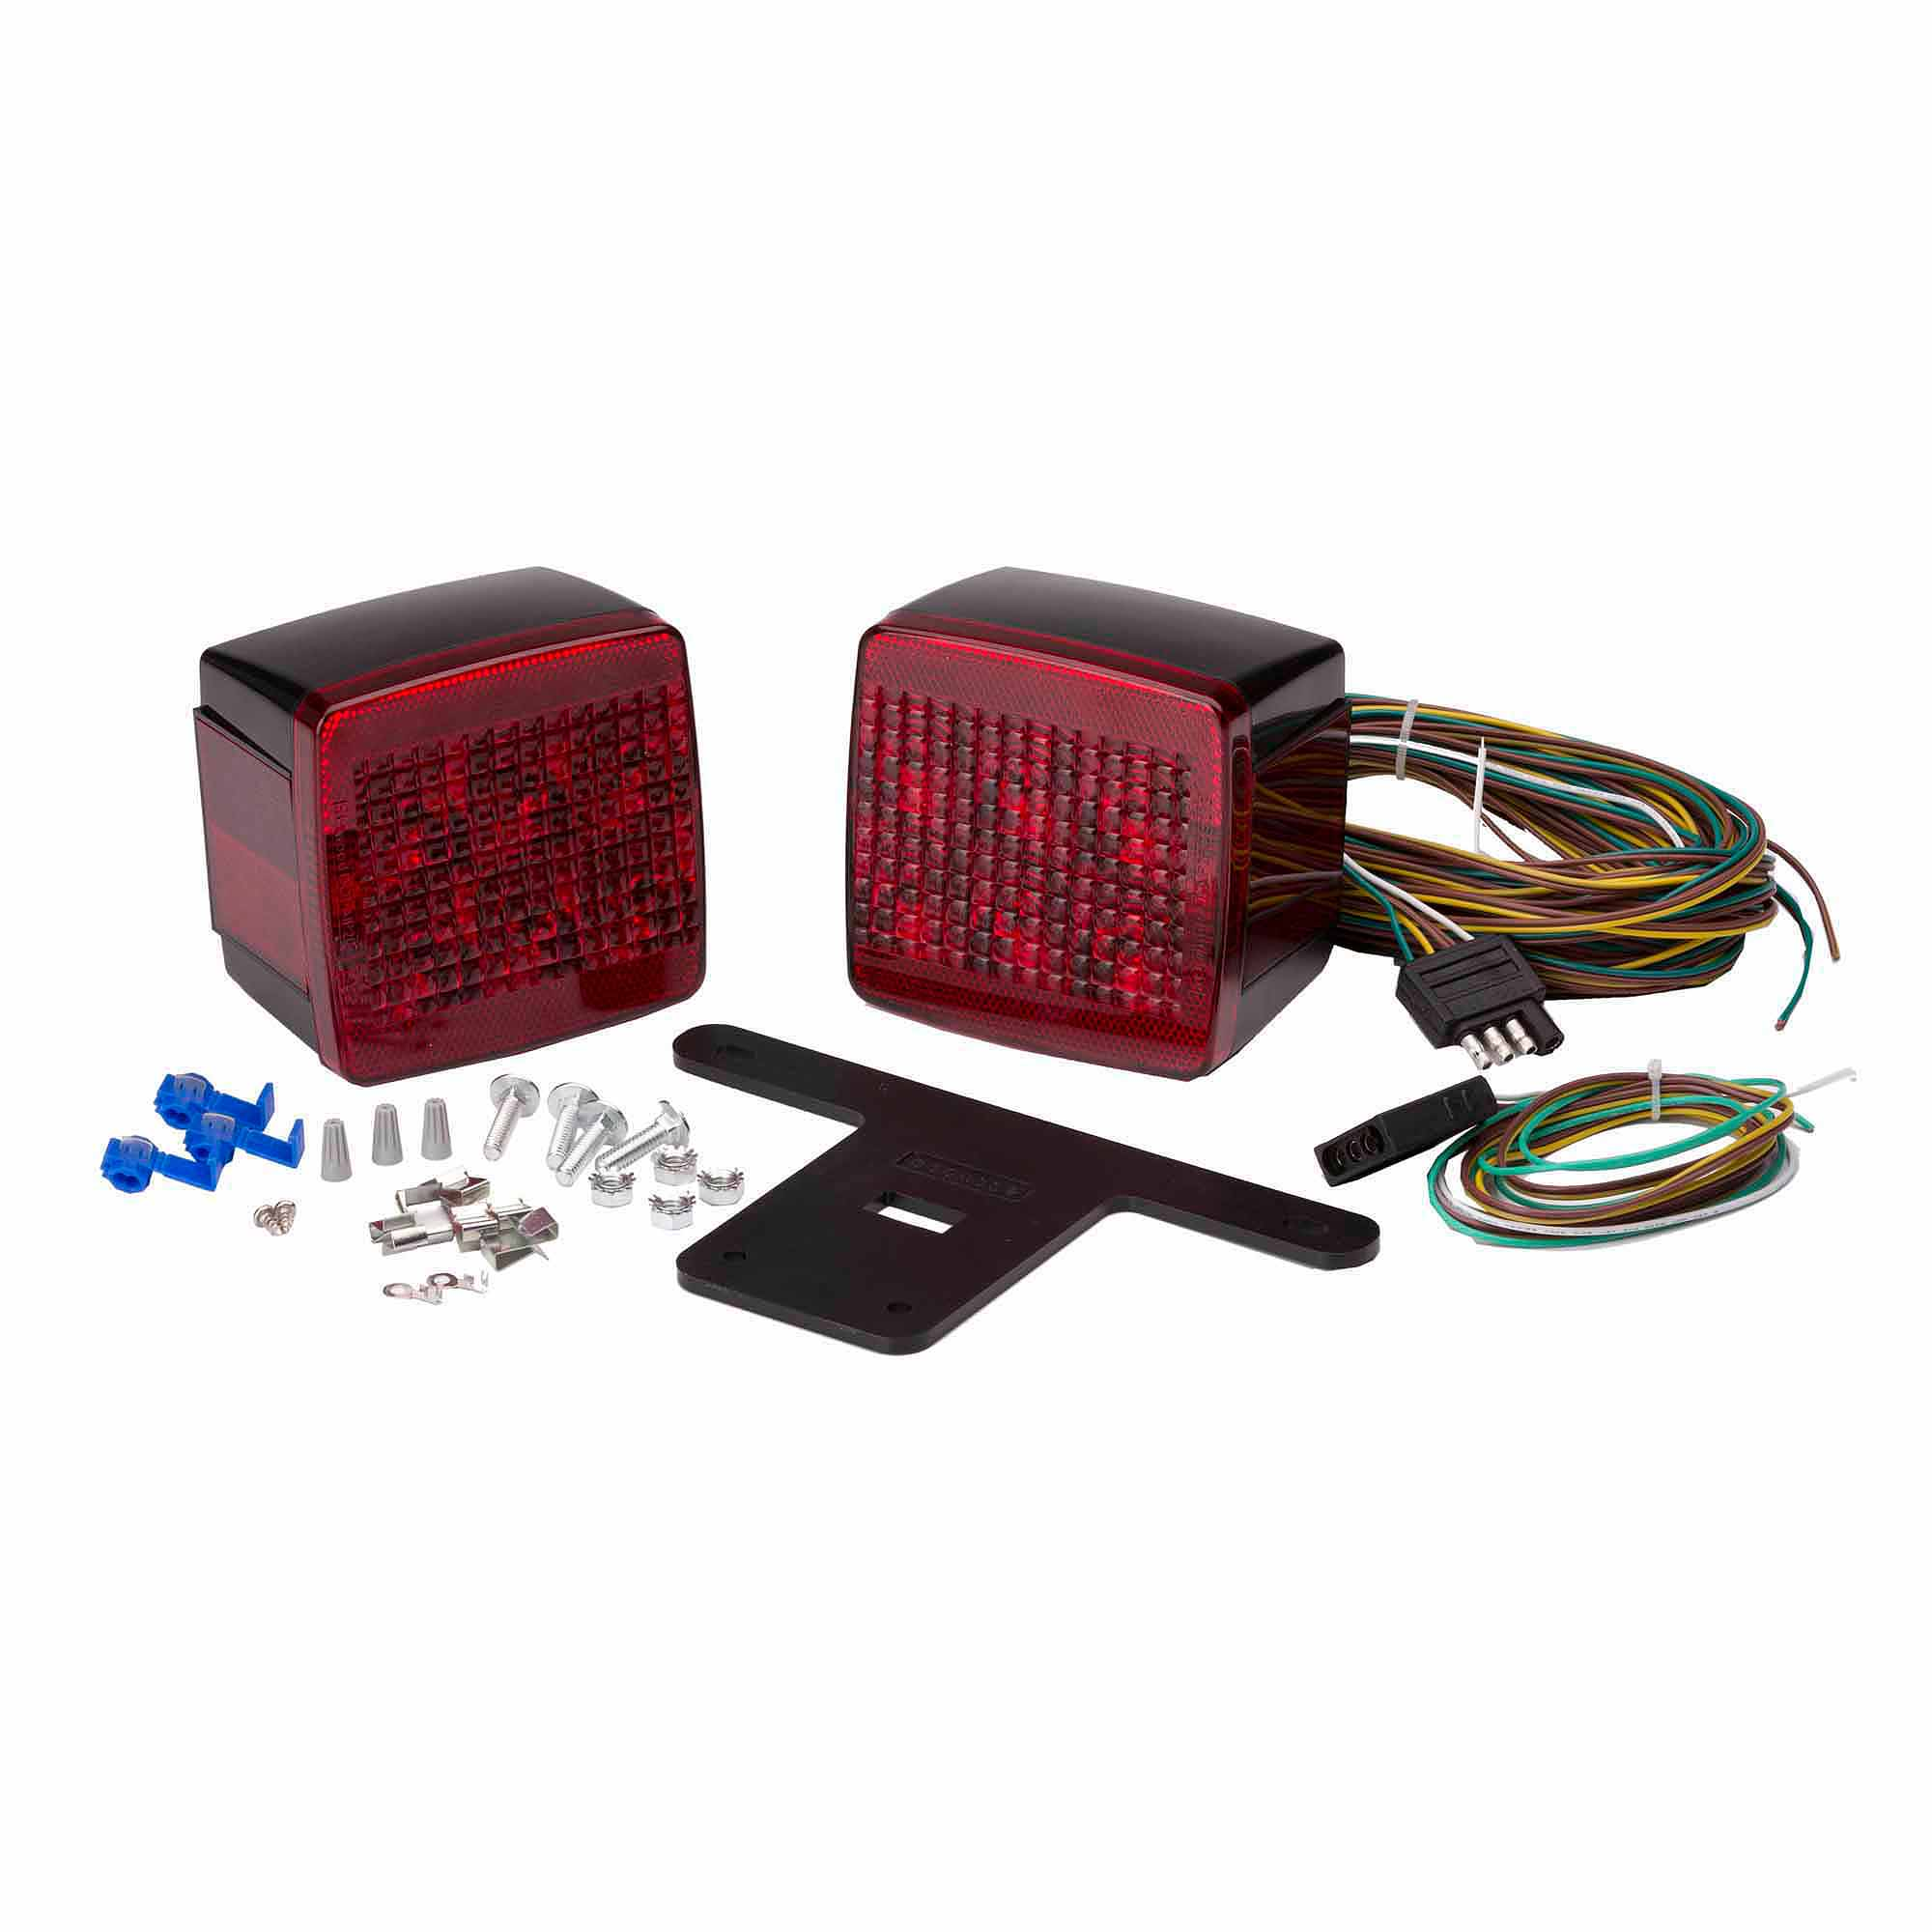 Attwood Led Standard Trailer Light Kit Towing Lights Wiring Diagram